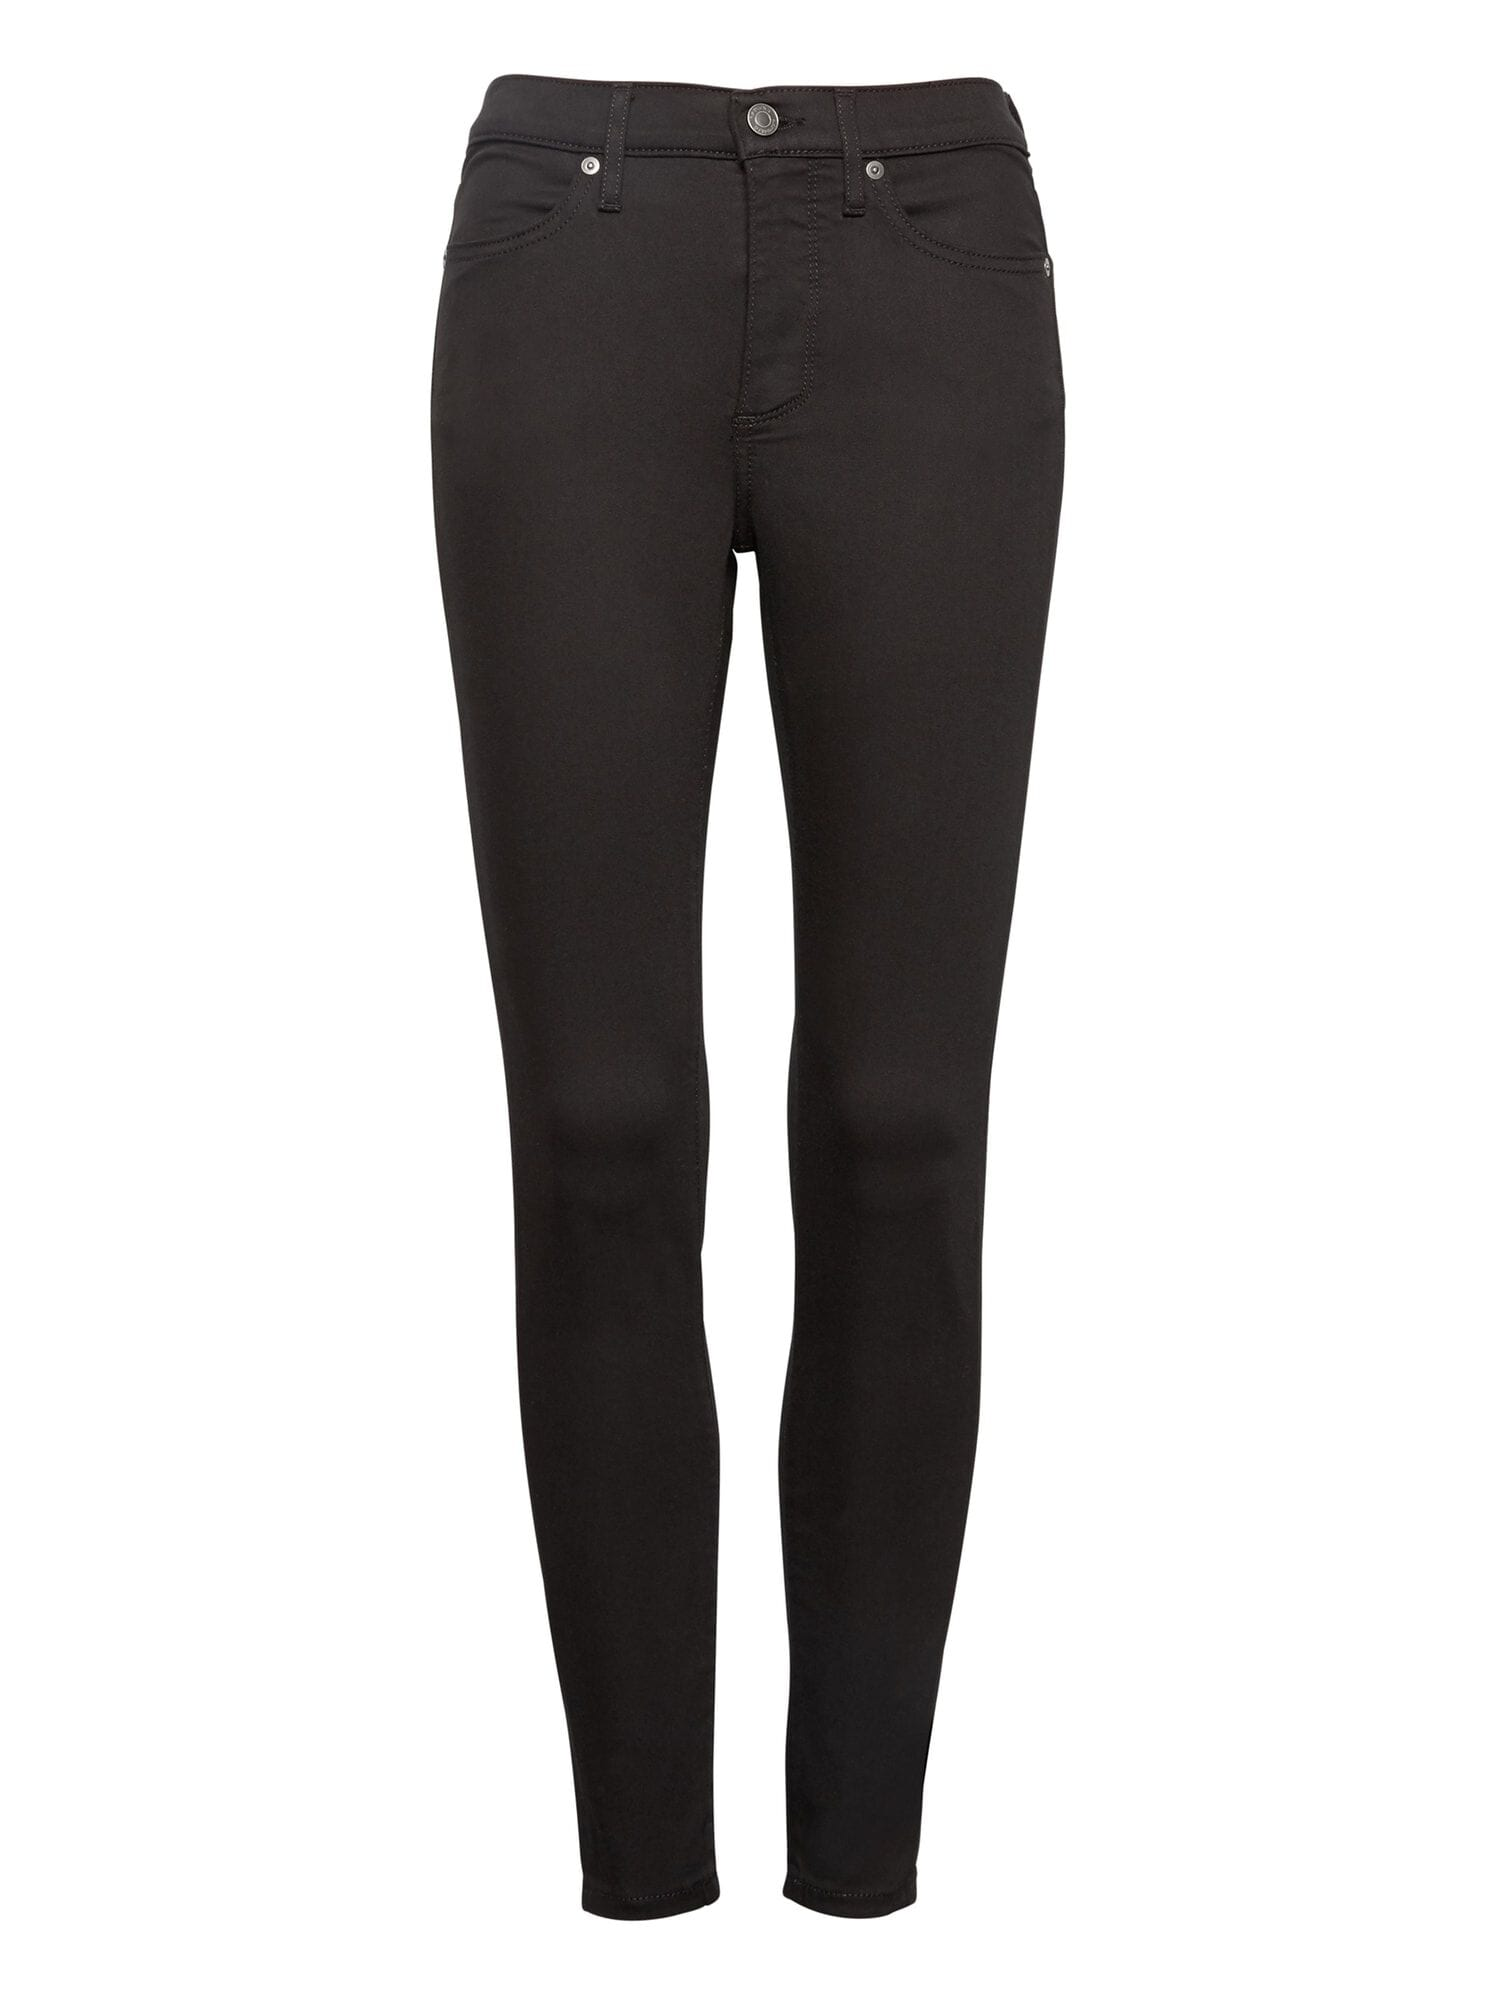 1ae4598523 Petite High-Rise Legging-Fit Luxe Sculpt Stay Black Ankle Jean ...